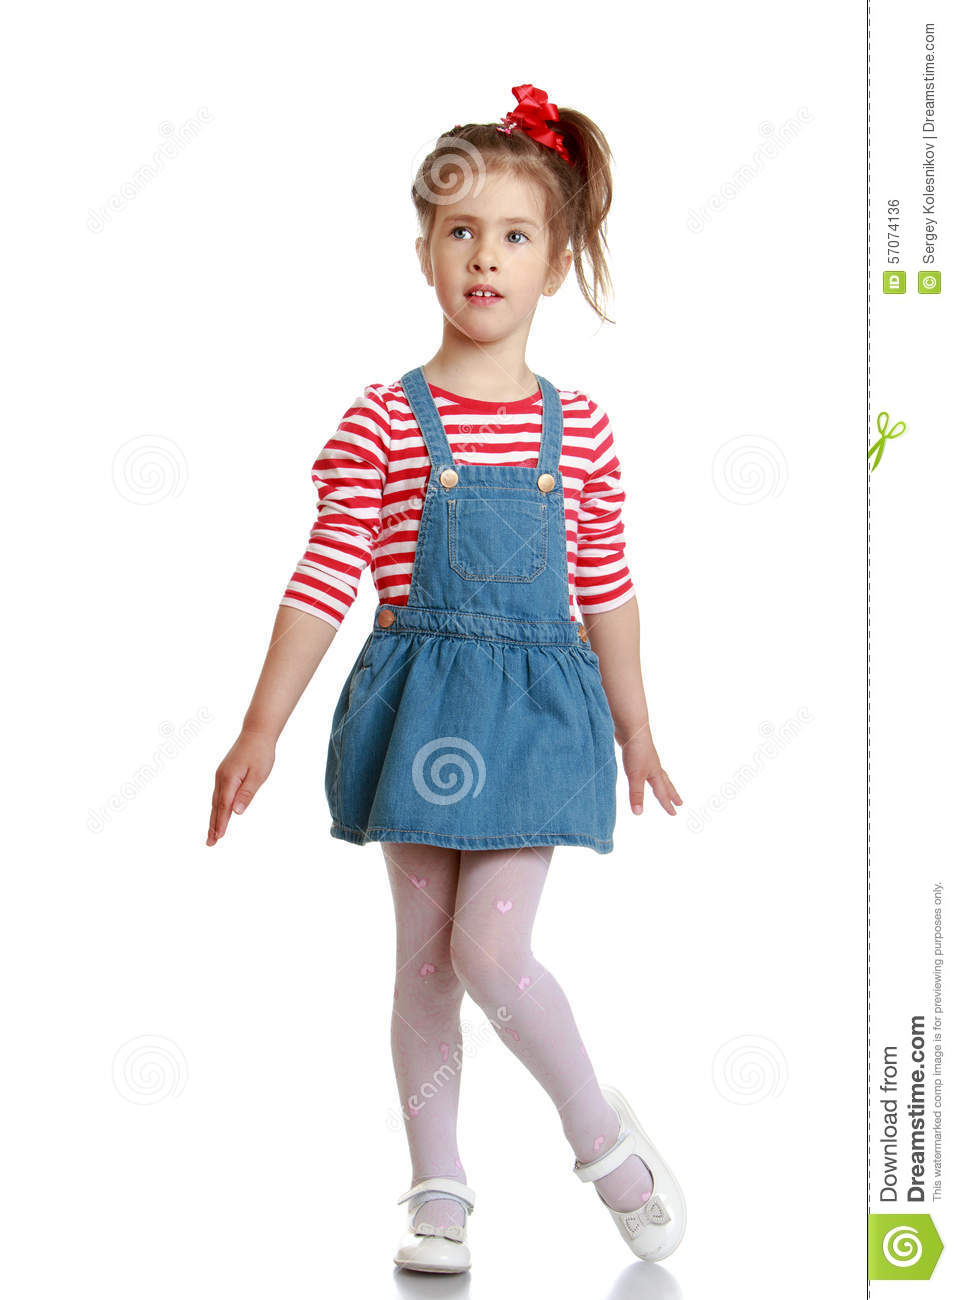 Little Girl In Denim Sundress Stock Photo - Image: 57074136